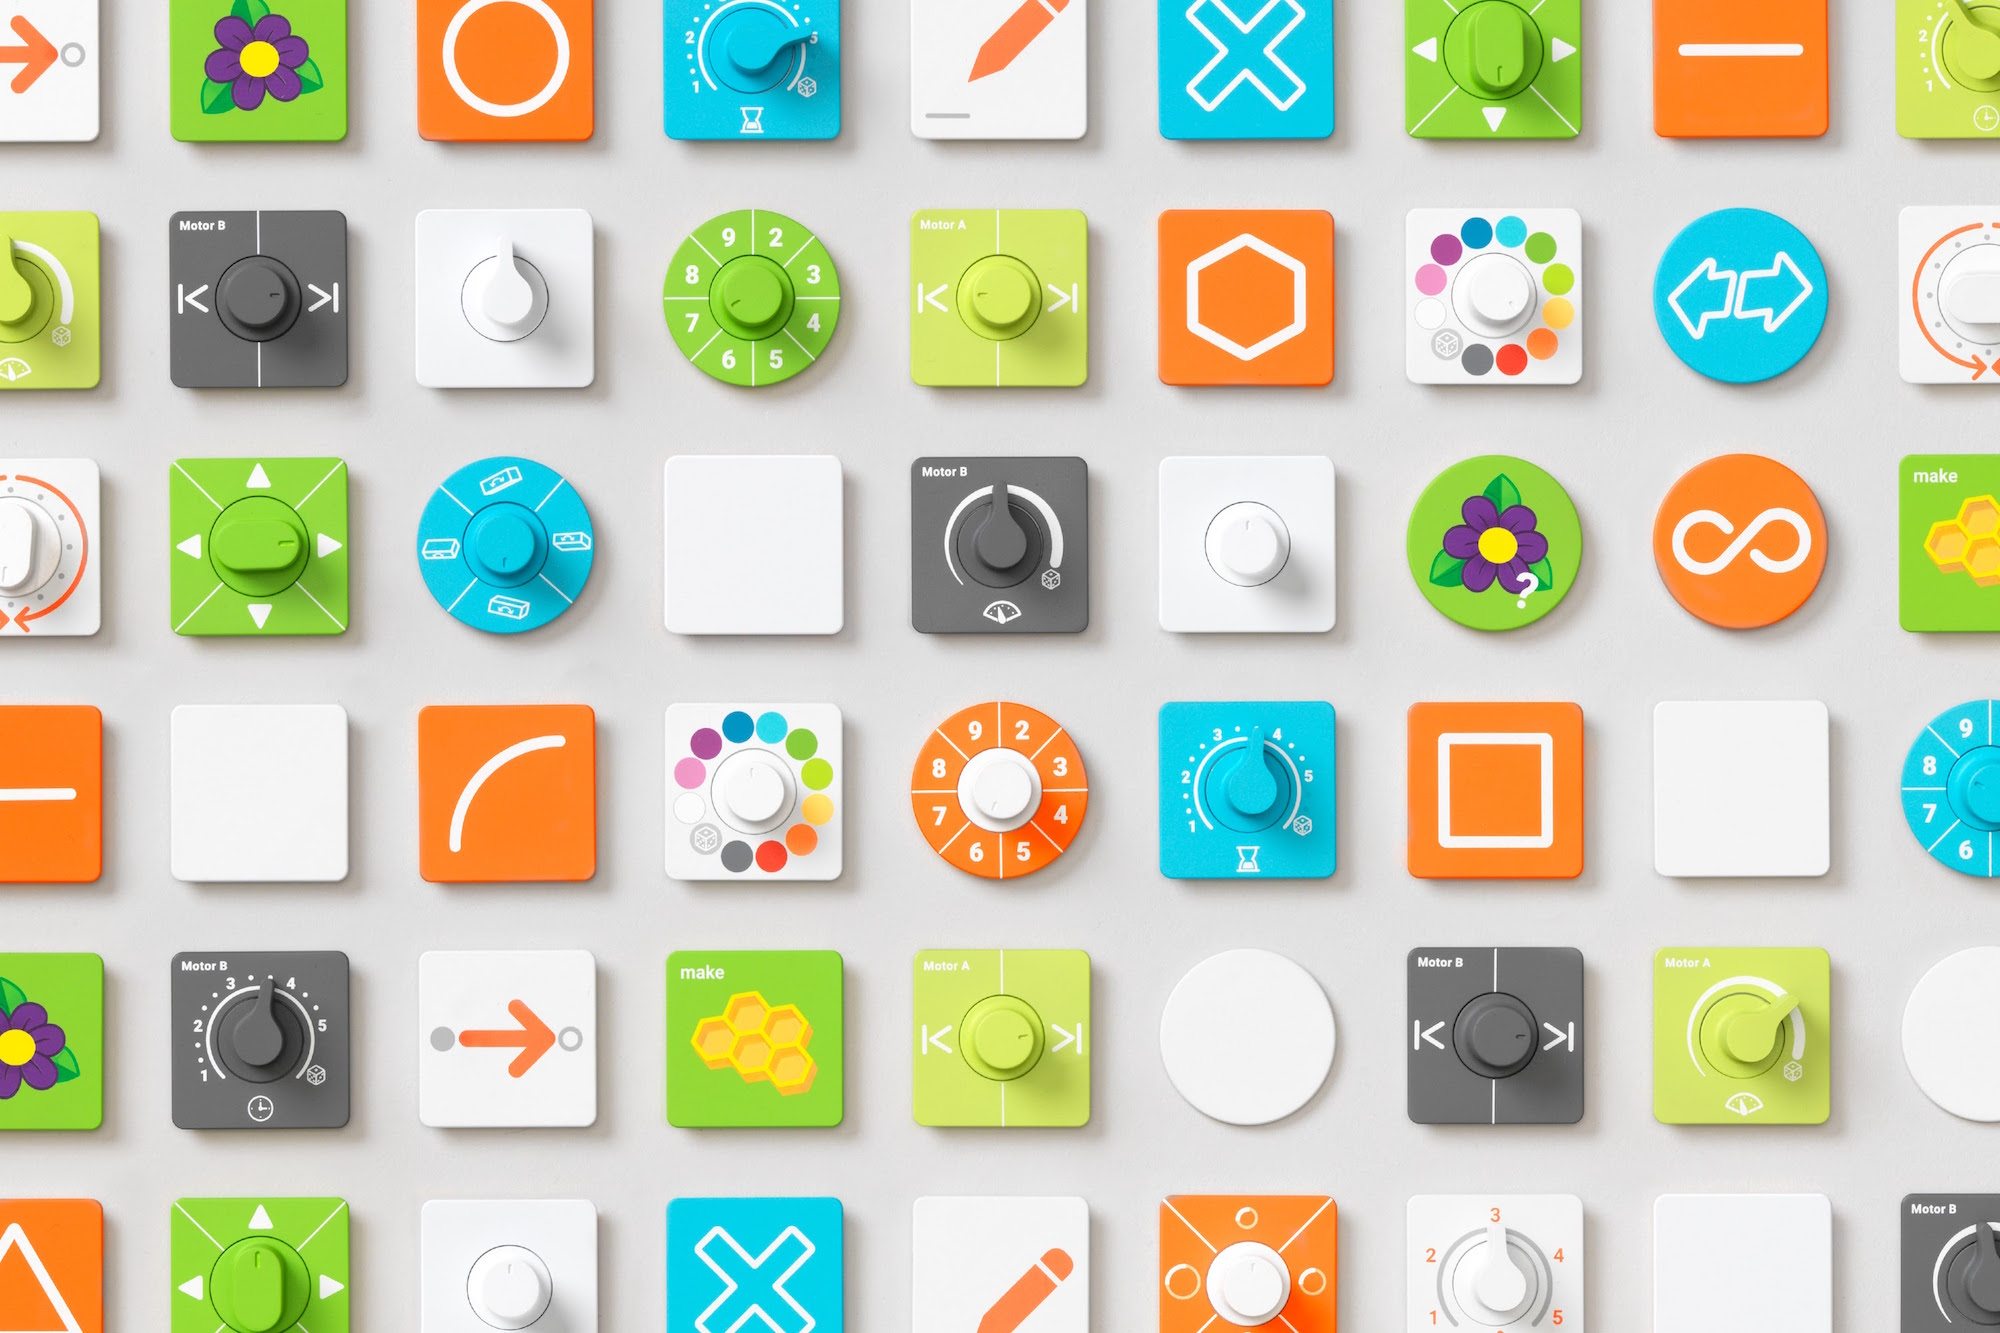 Google s Project Bloks tinker toys teach coding to kids